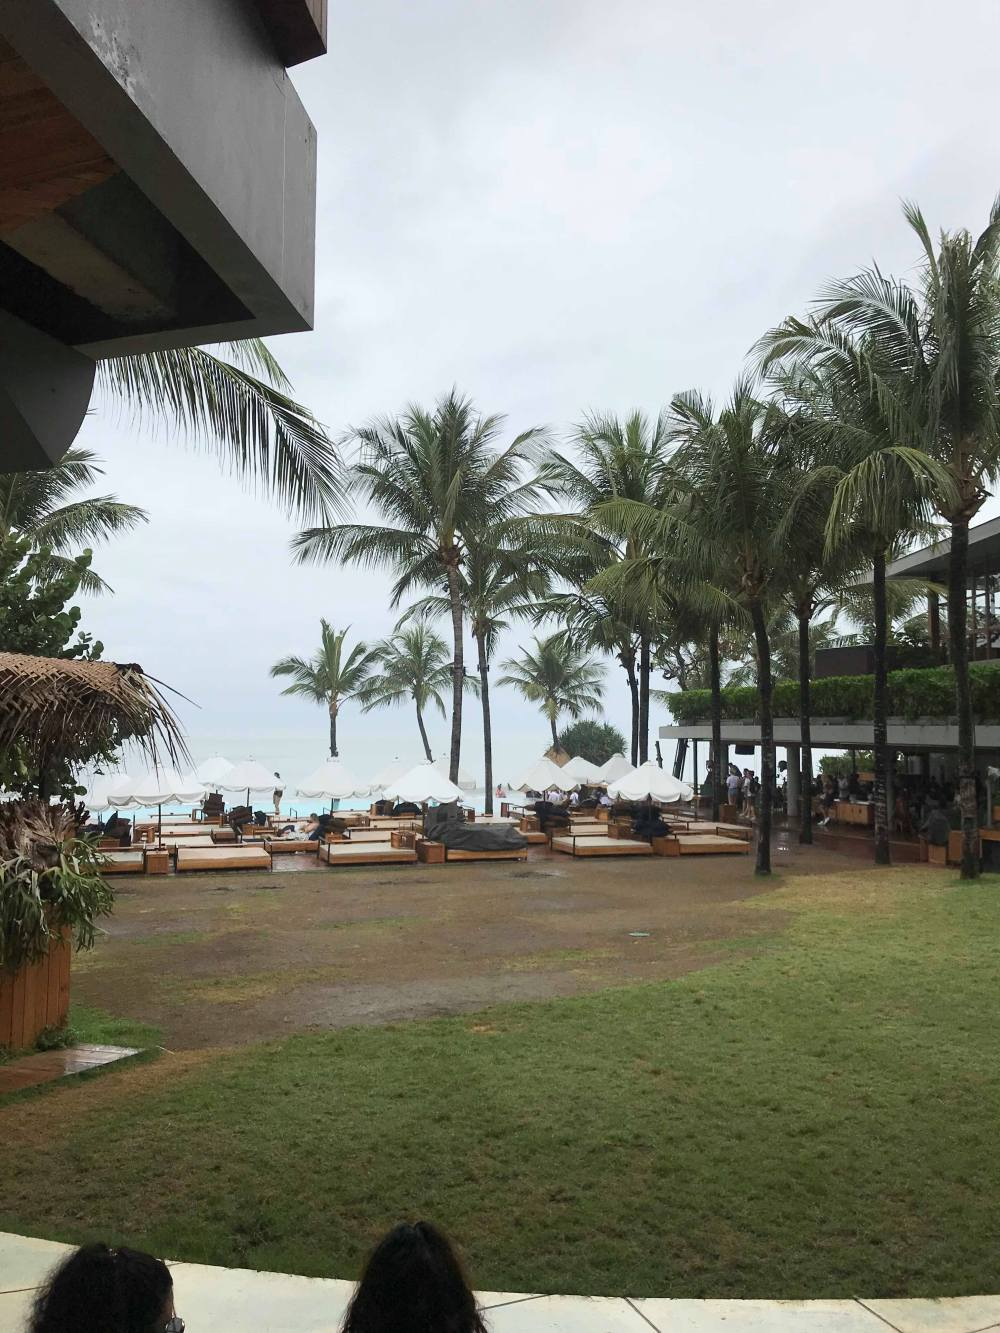 Review of Potato Head beach club in Seminyak, Bali by Luxe Beach Baby